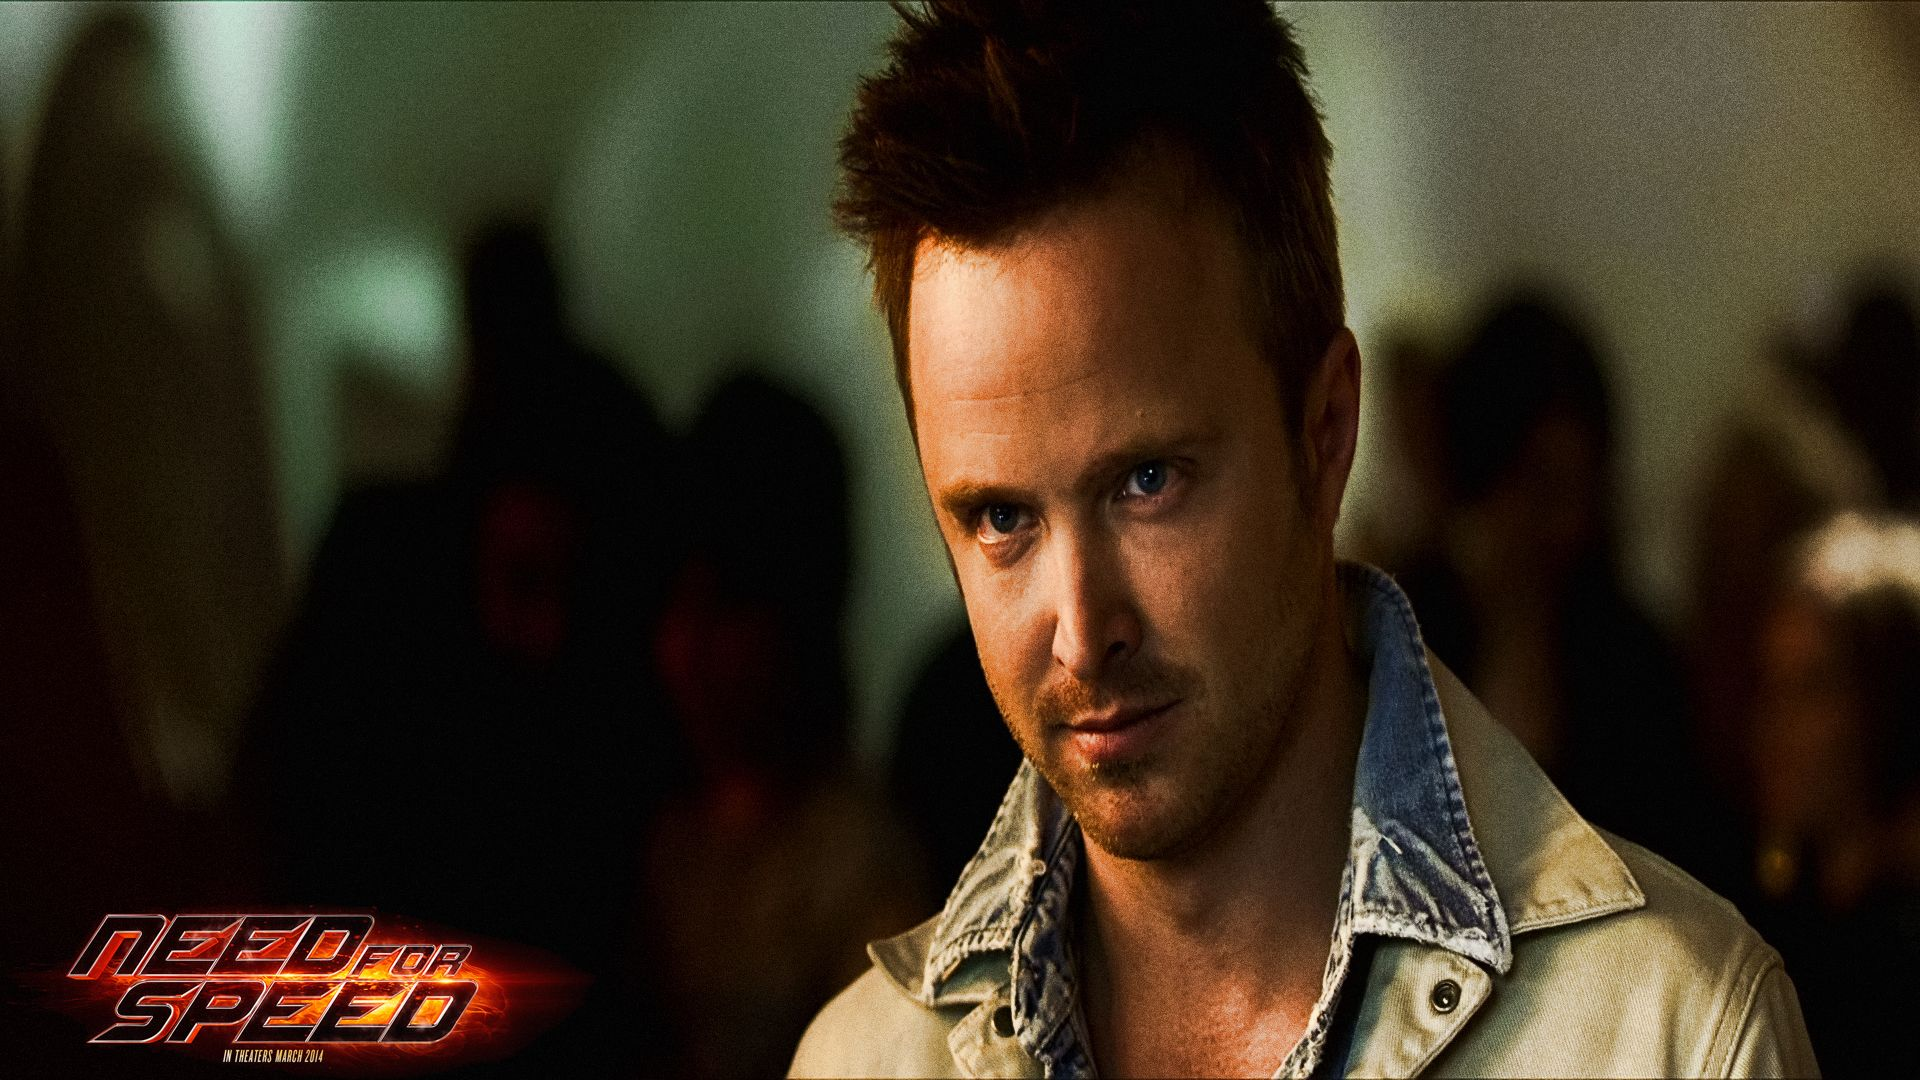 Need For Speed Movie Wallpapers 1920x1080 2 Jpg 1 920 1 080 Pixels